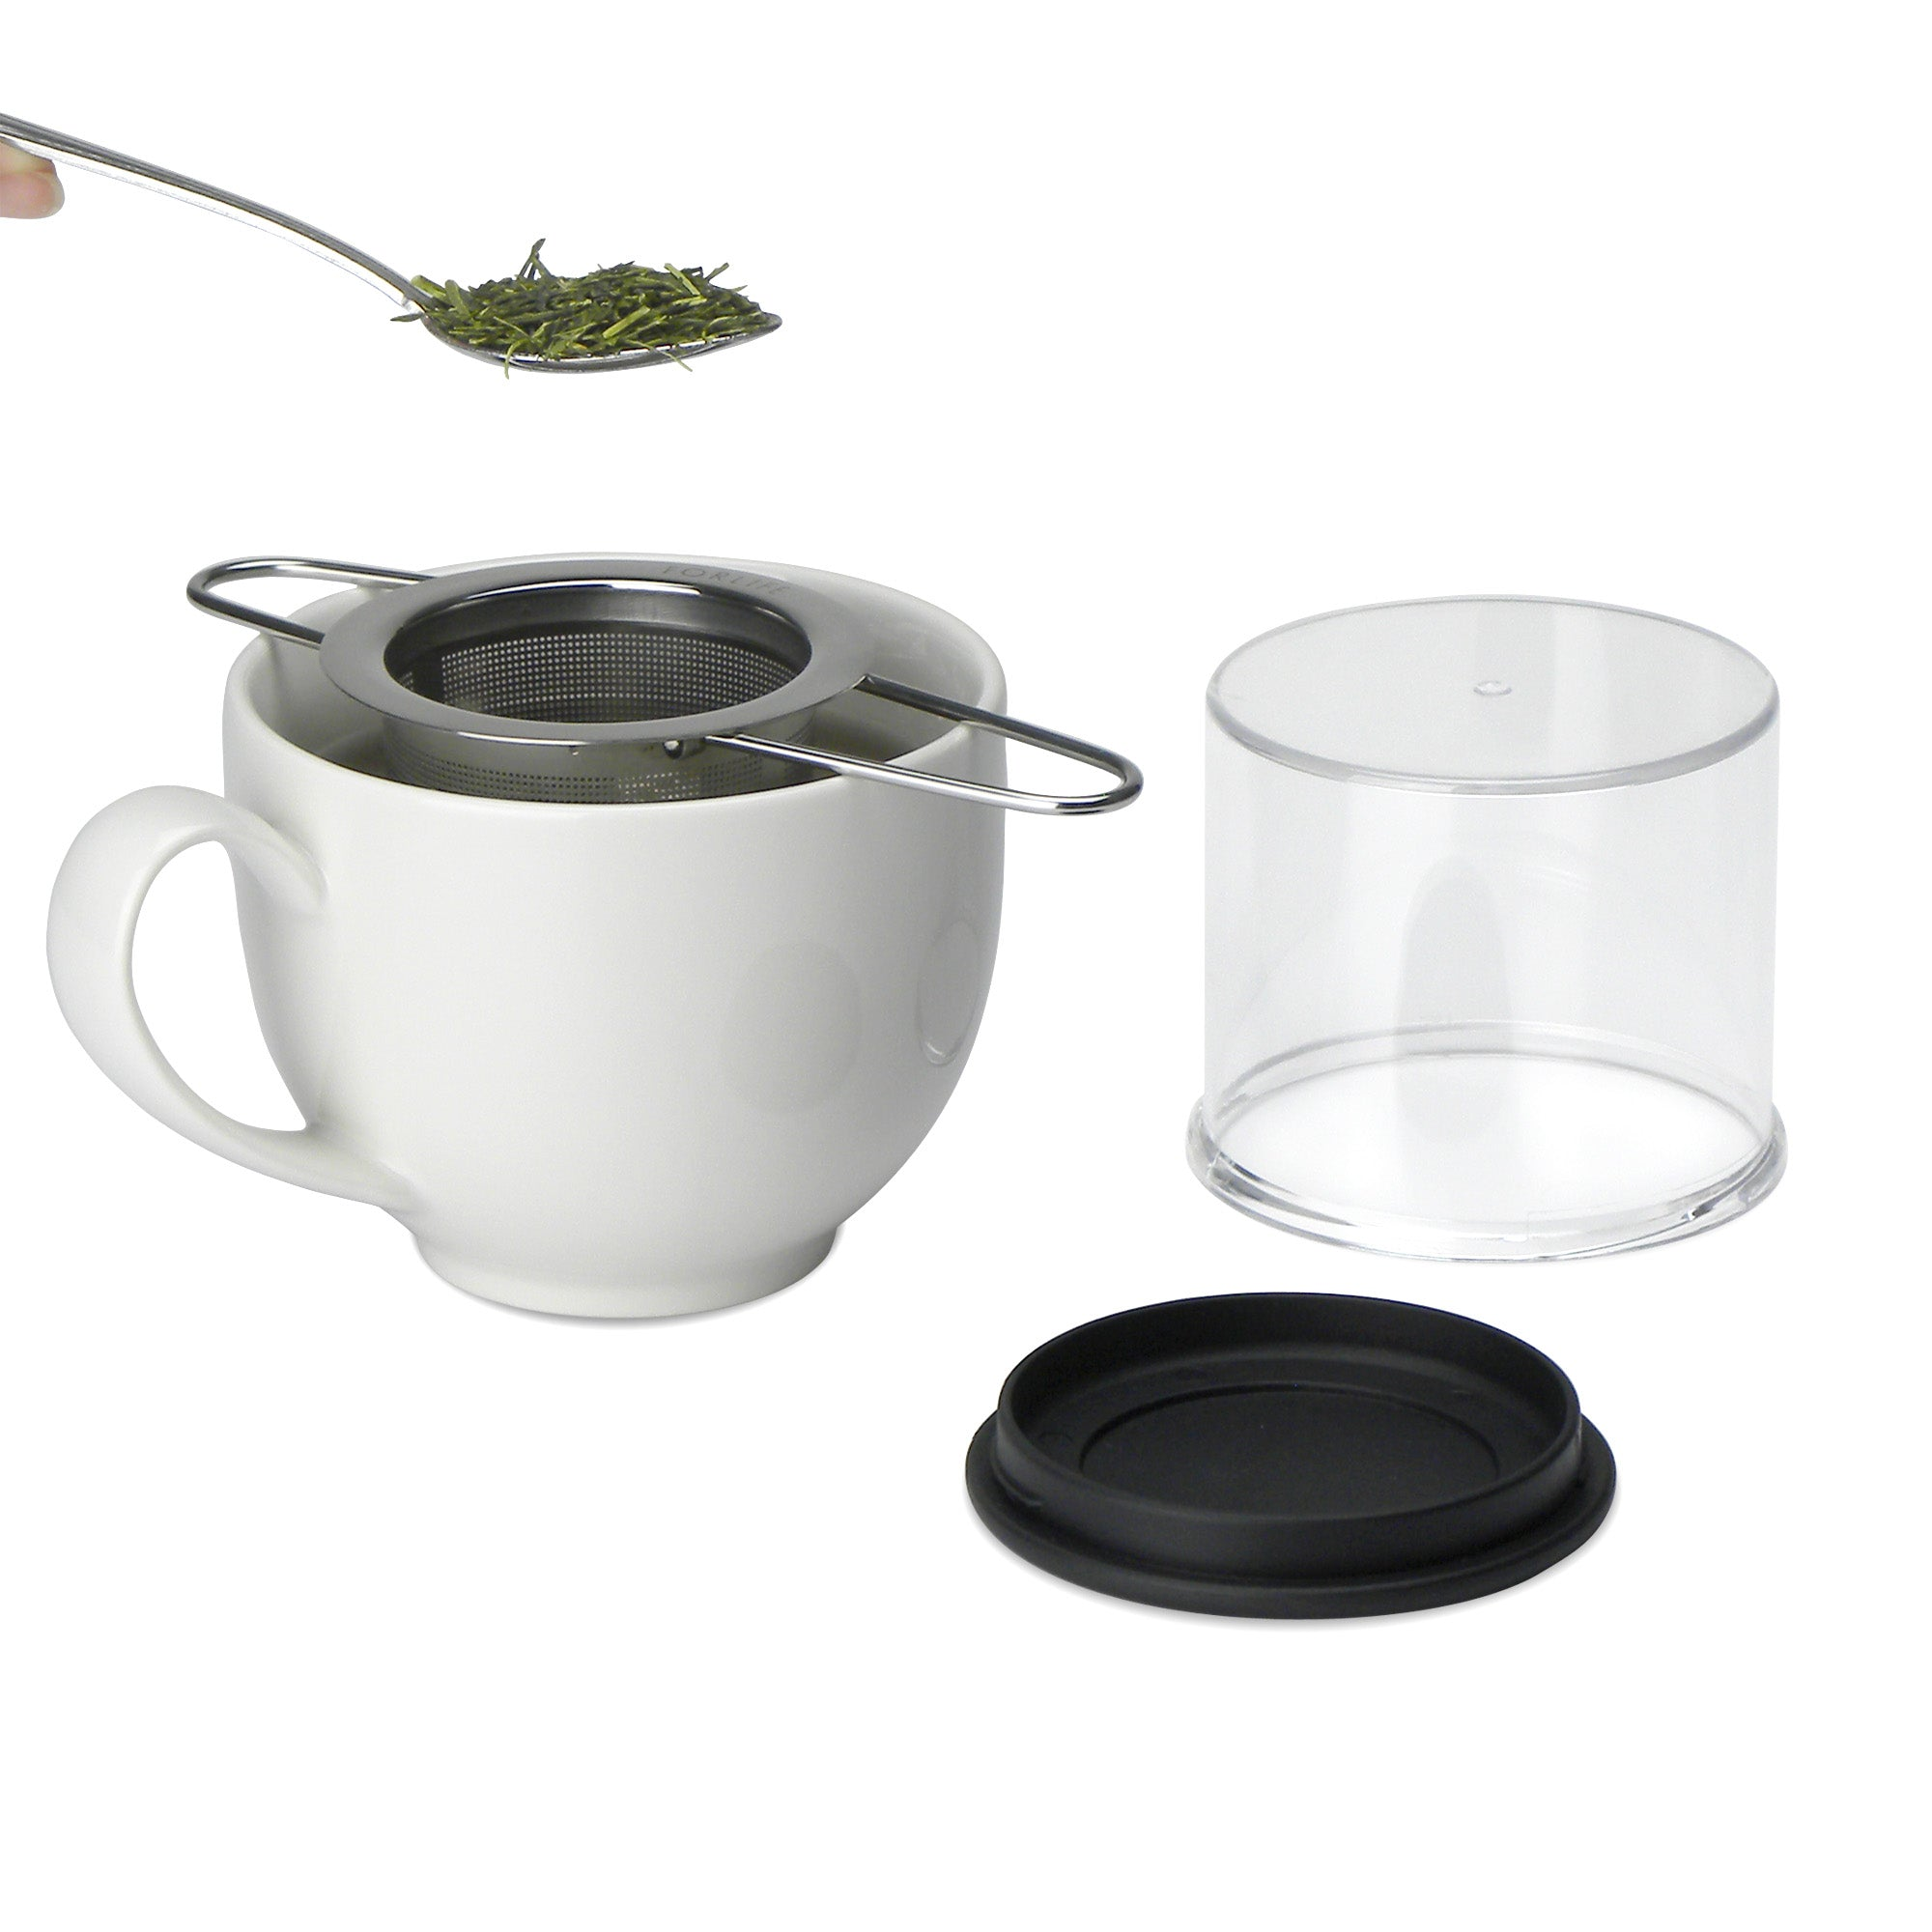 Folding Handle Tea Infuser with Carrying Case (Set of 6)